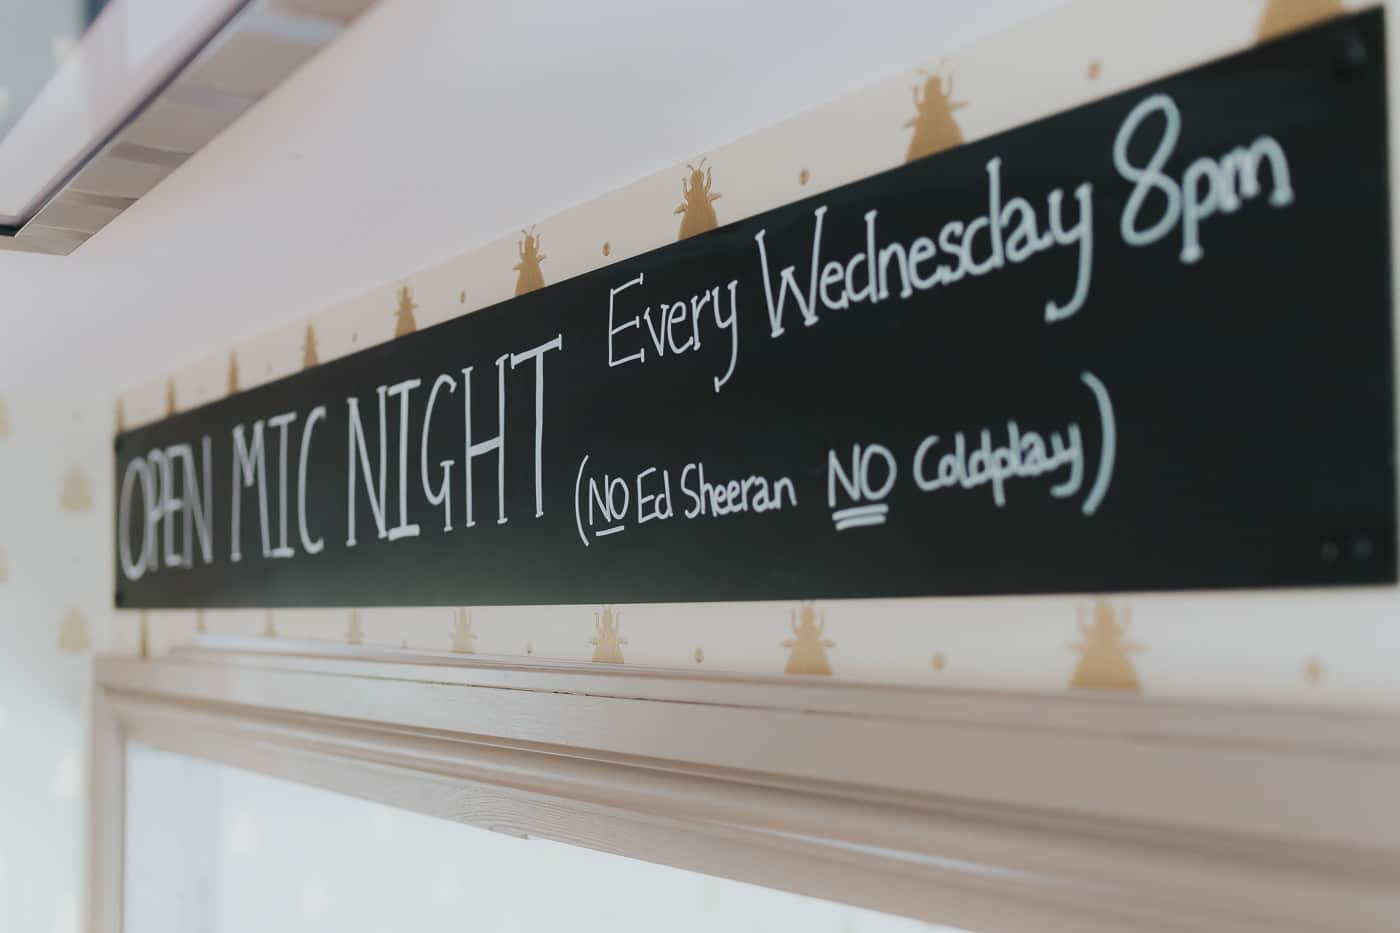 Close up of a chalk board which says 'open mic night Every Wednesday 8pm (no Ed Sheeran no Coldplay)